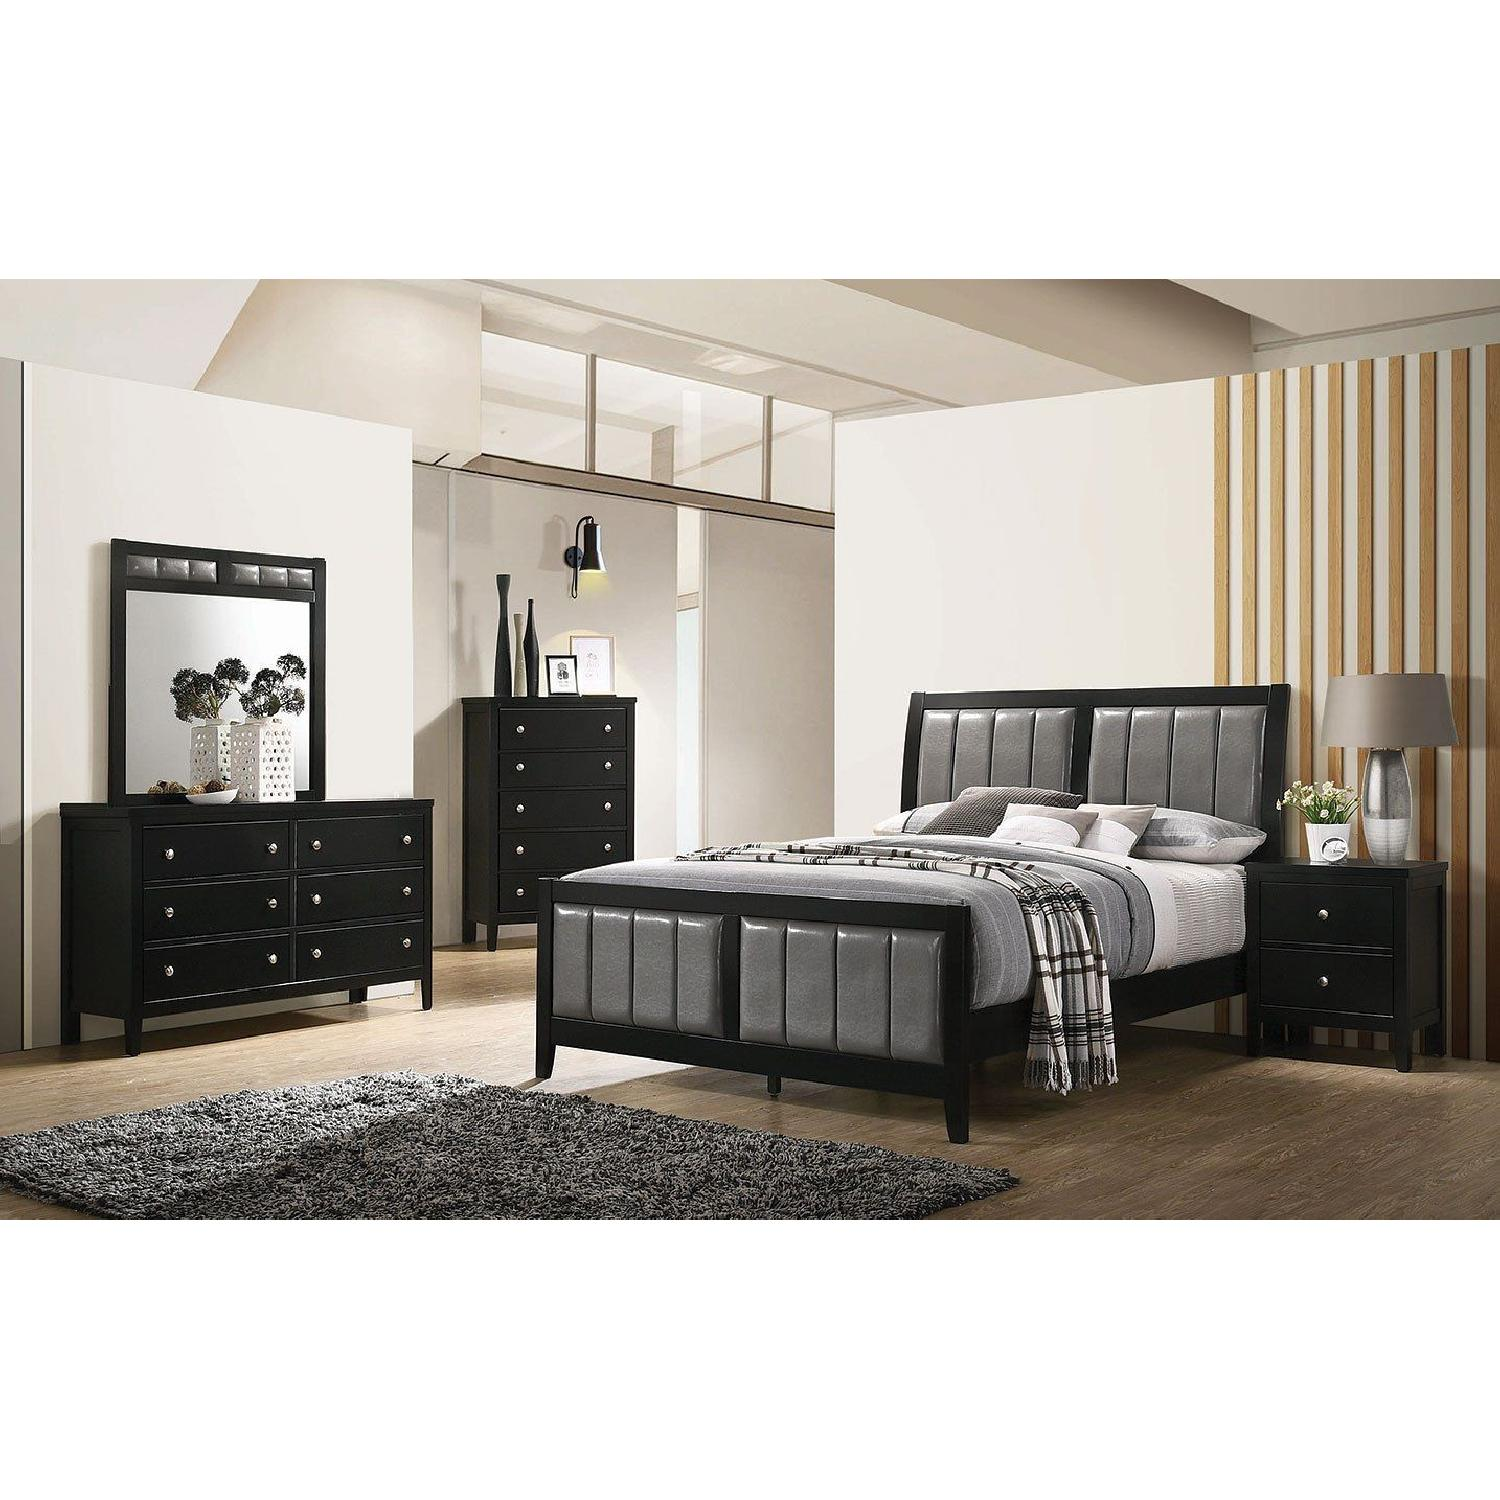 Queen Bed in Black Wood Frame w/ Grey Leatherette Headboard - image-8